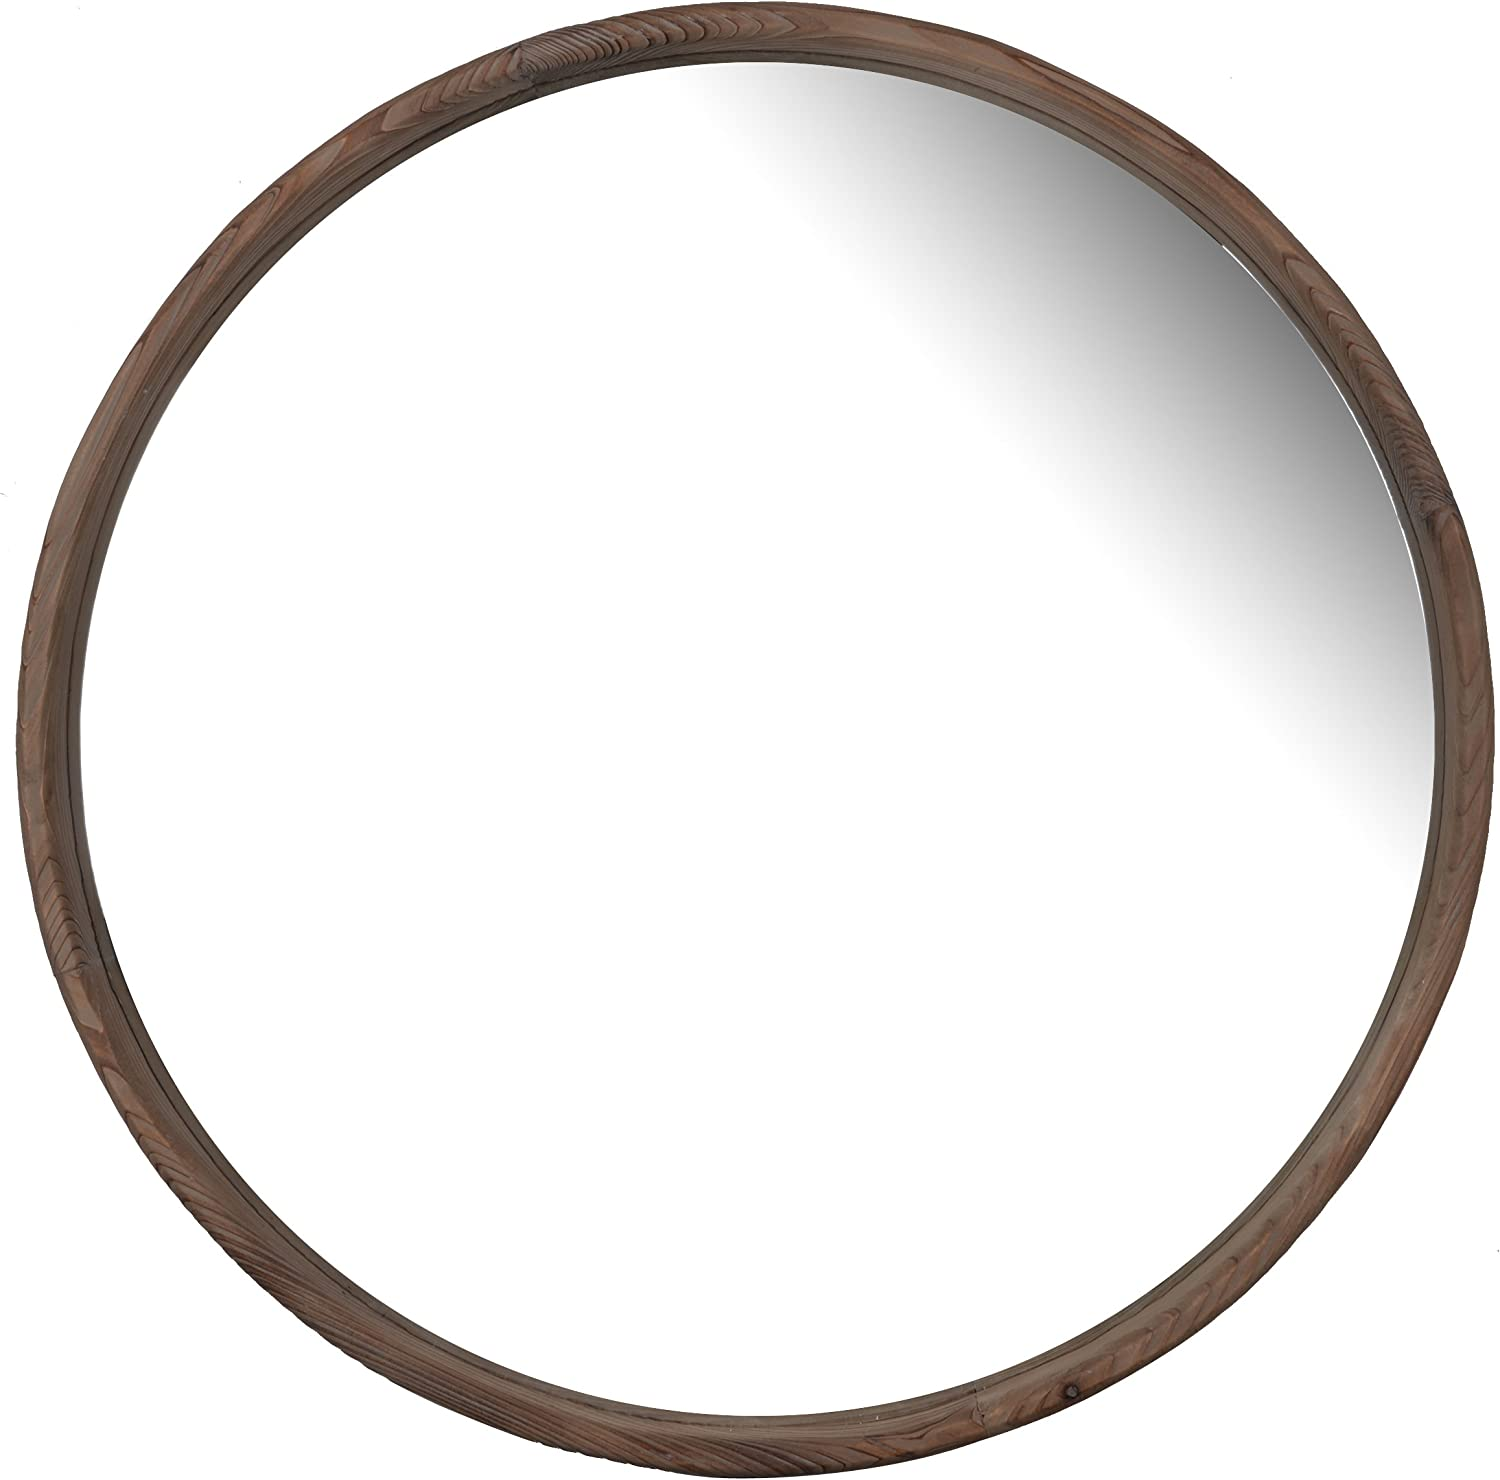 A&B Home Thayne Round Wall Mirror, 27.5 by 2-Inch